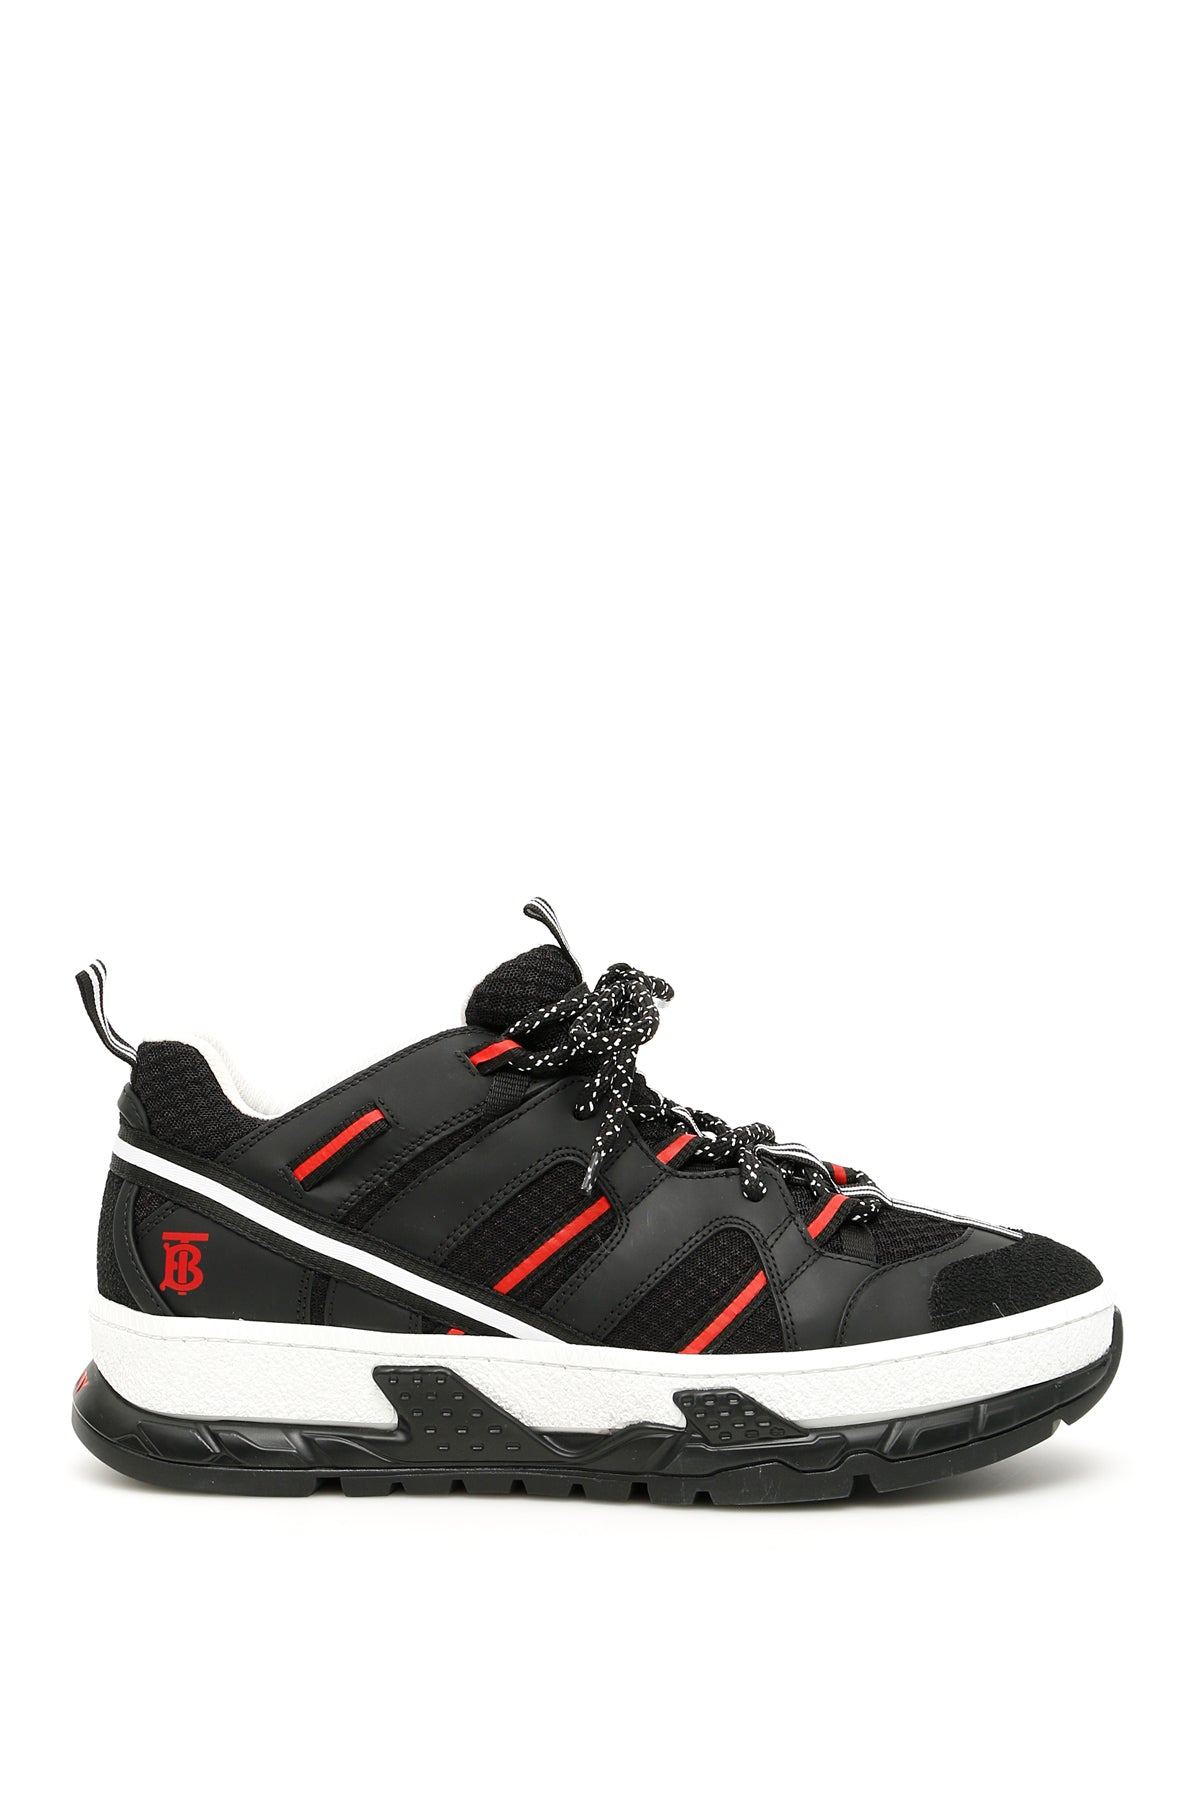 Burberry Sneakers BURBERRY UNION LOGO LOW TOP SNEAKERS